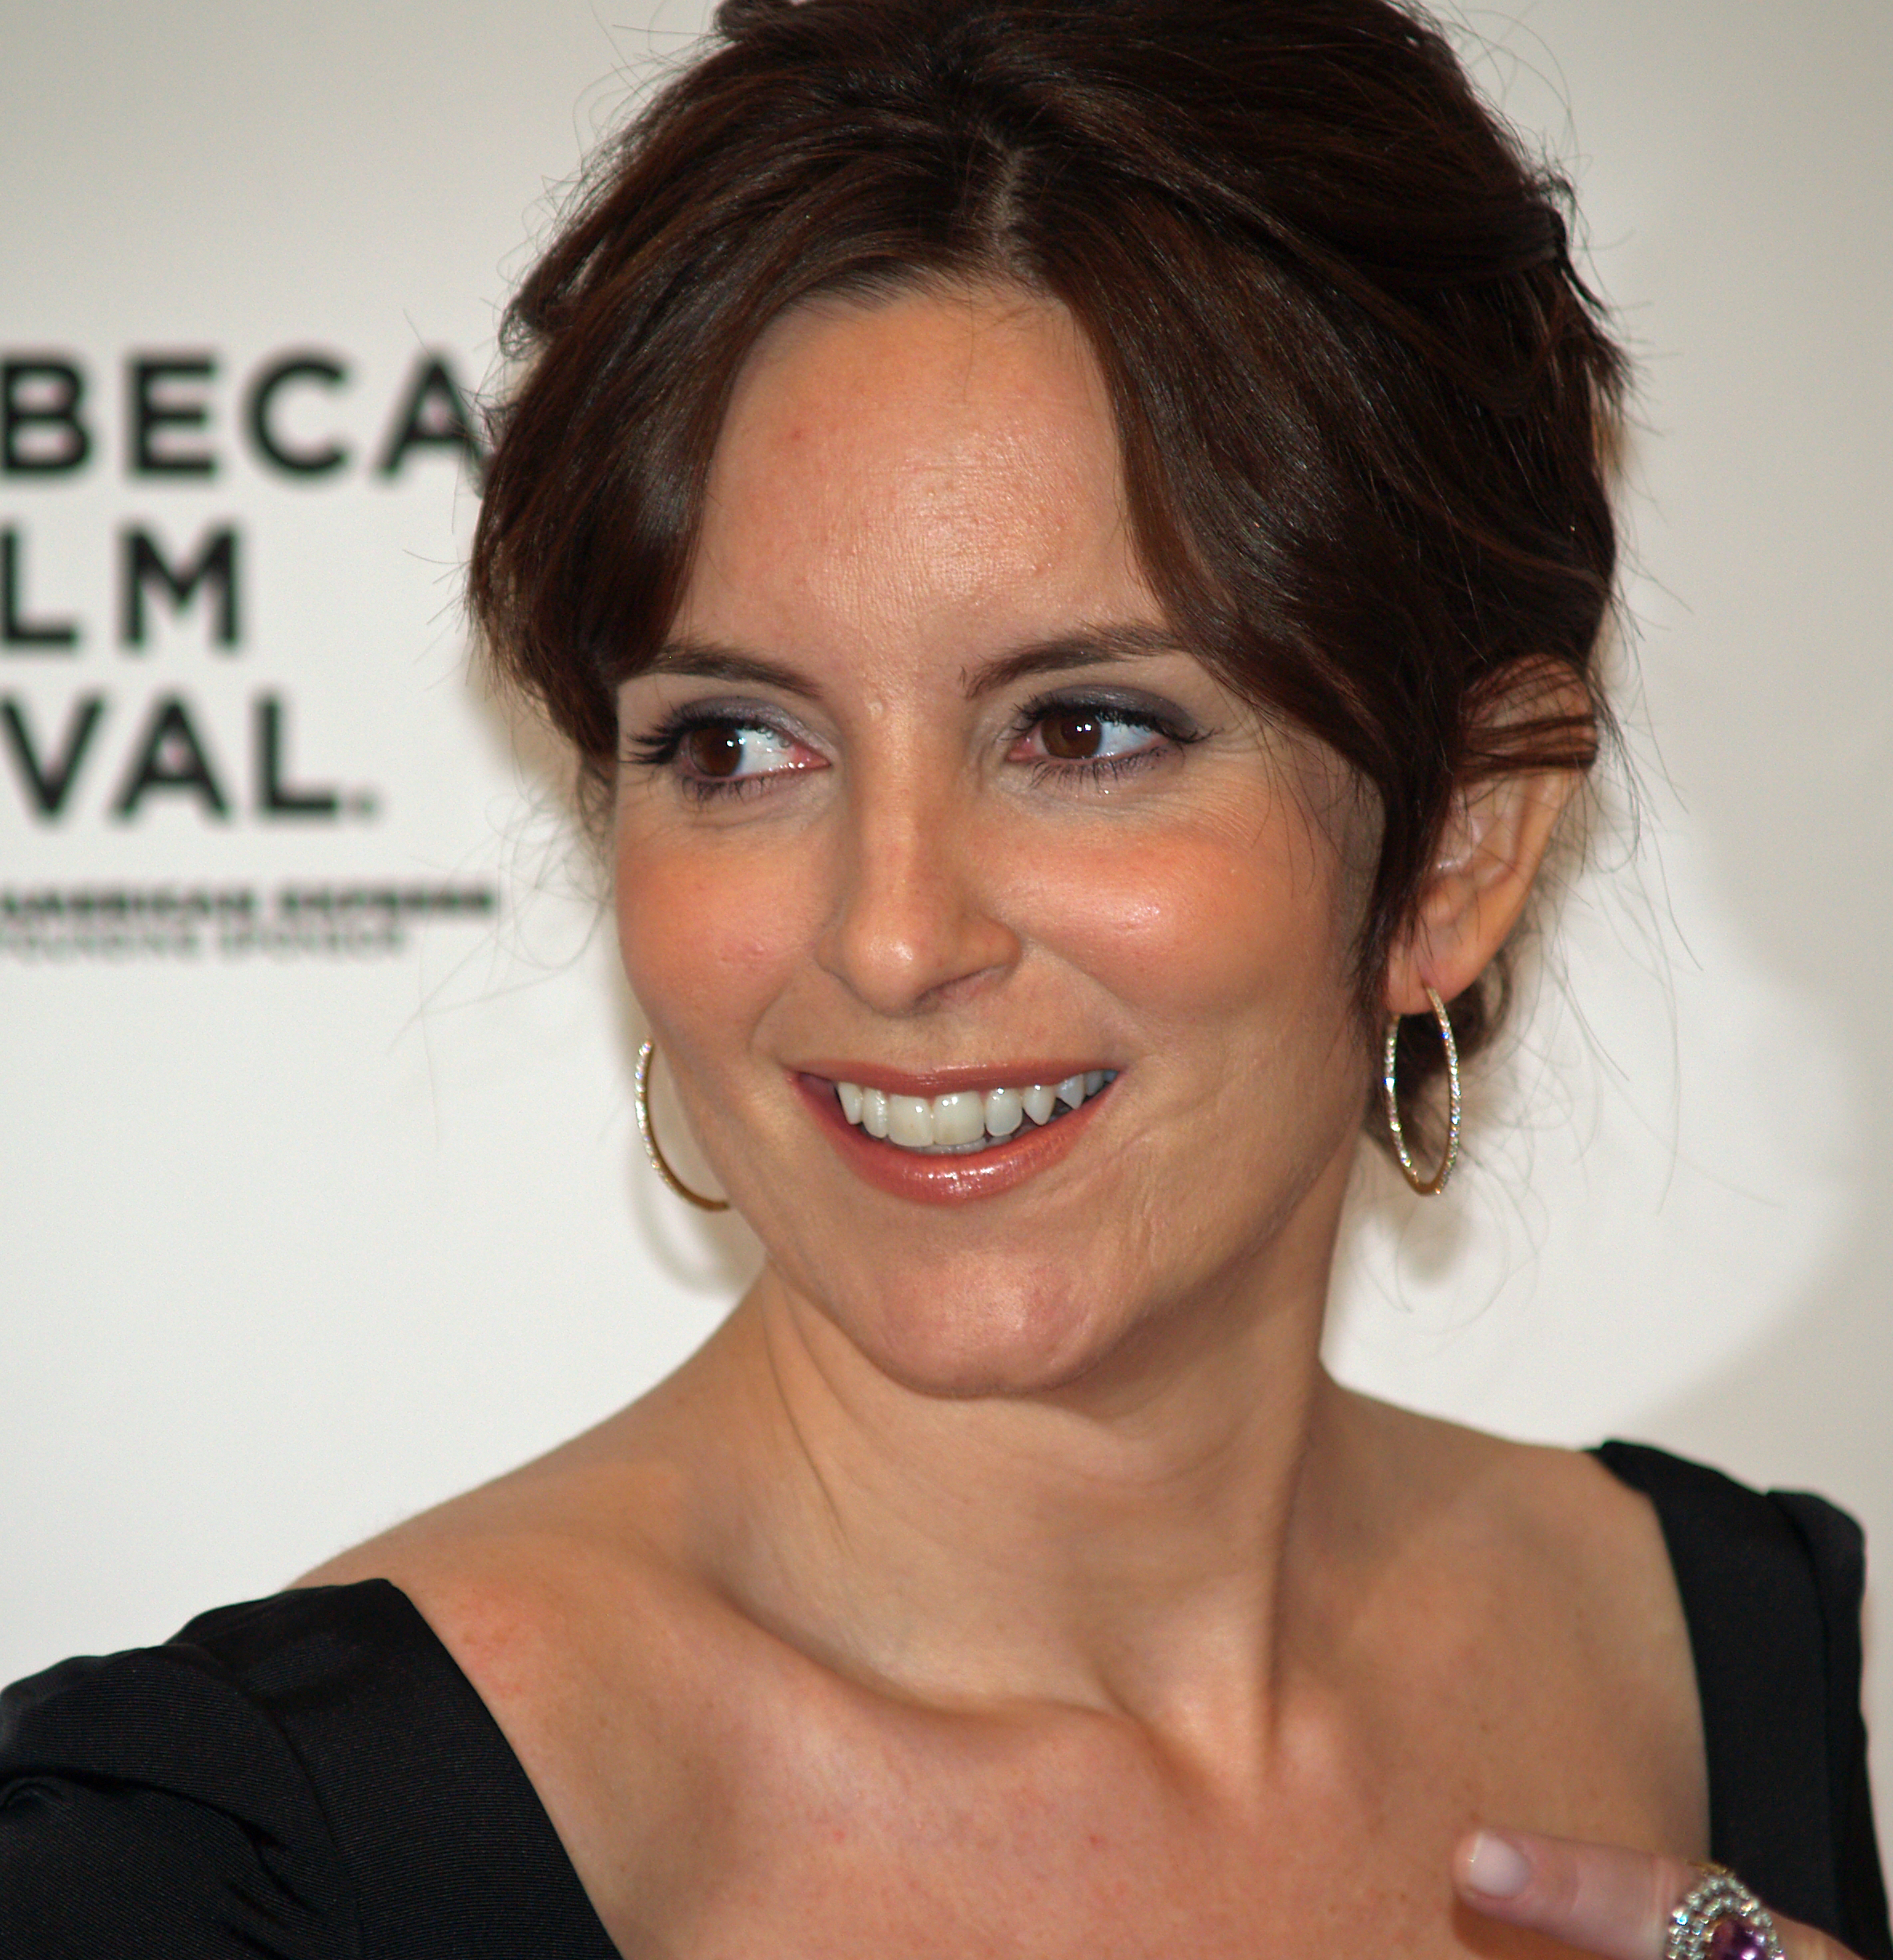 File:Tina Fey by David Shankbone.jpg - Wikipedia